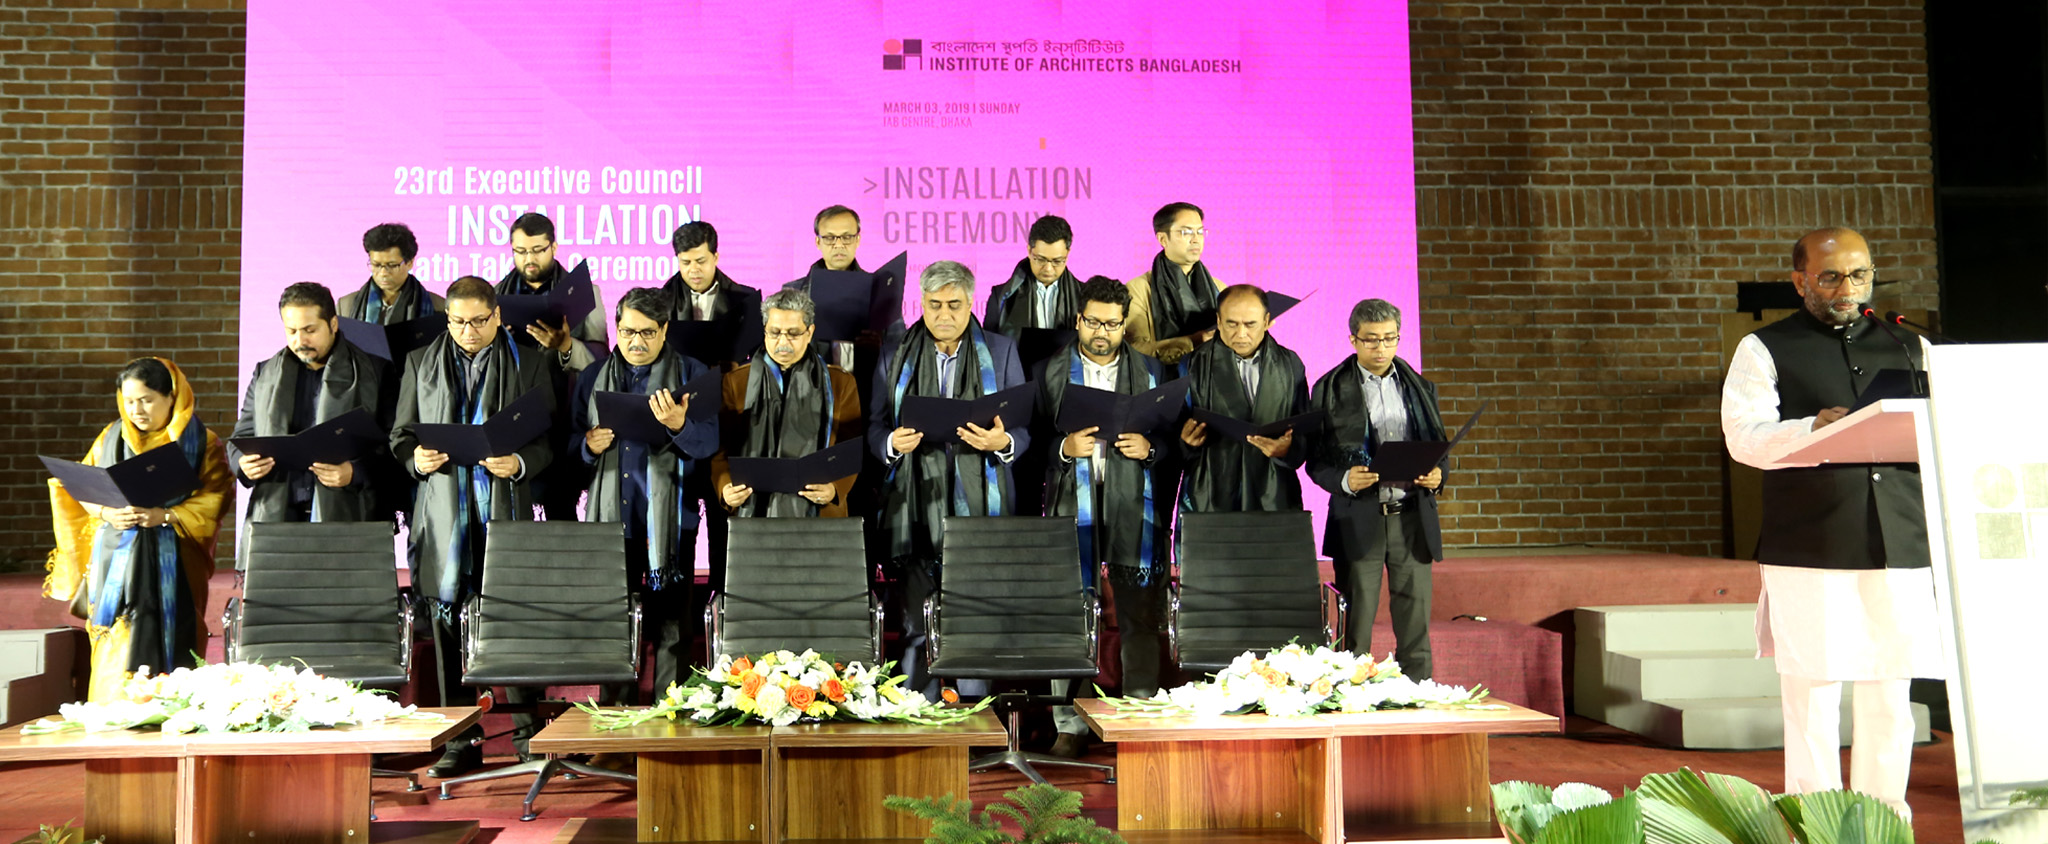 Installation Ceremony 2019.jpg